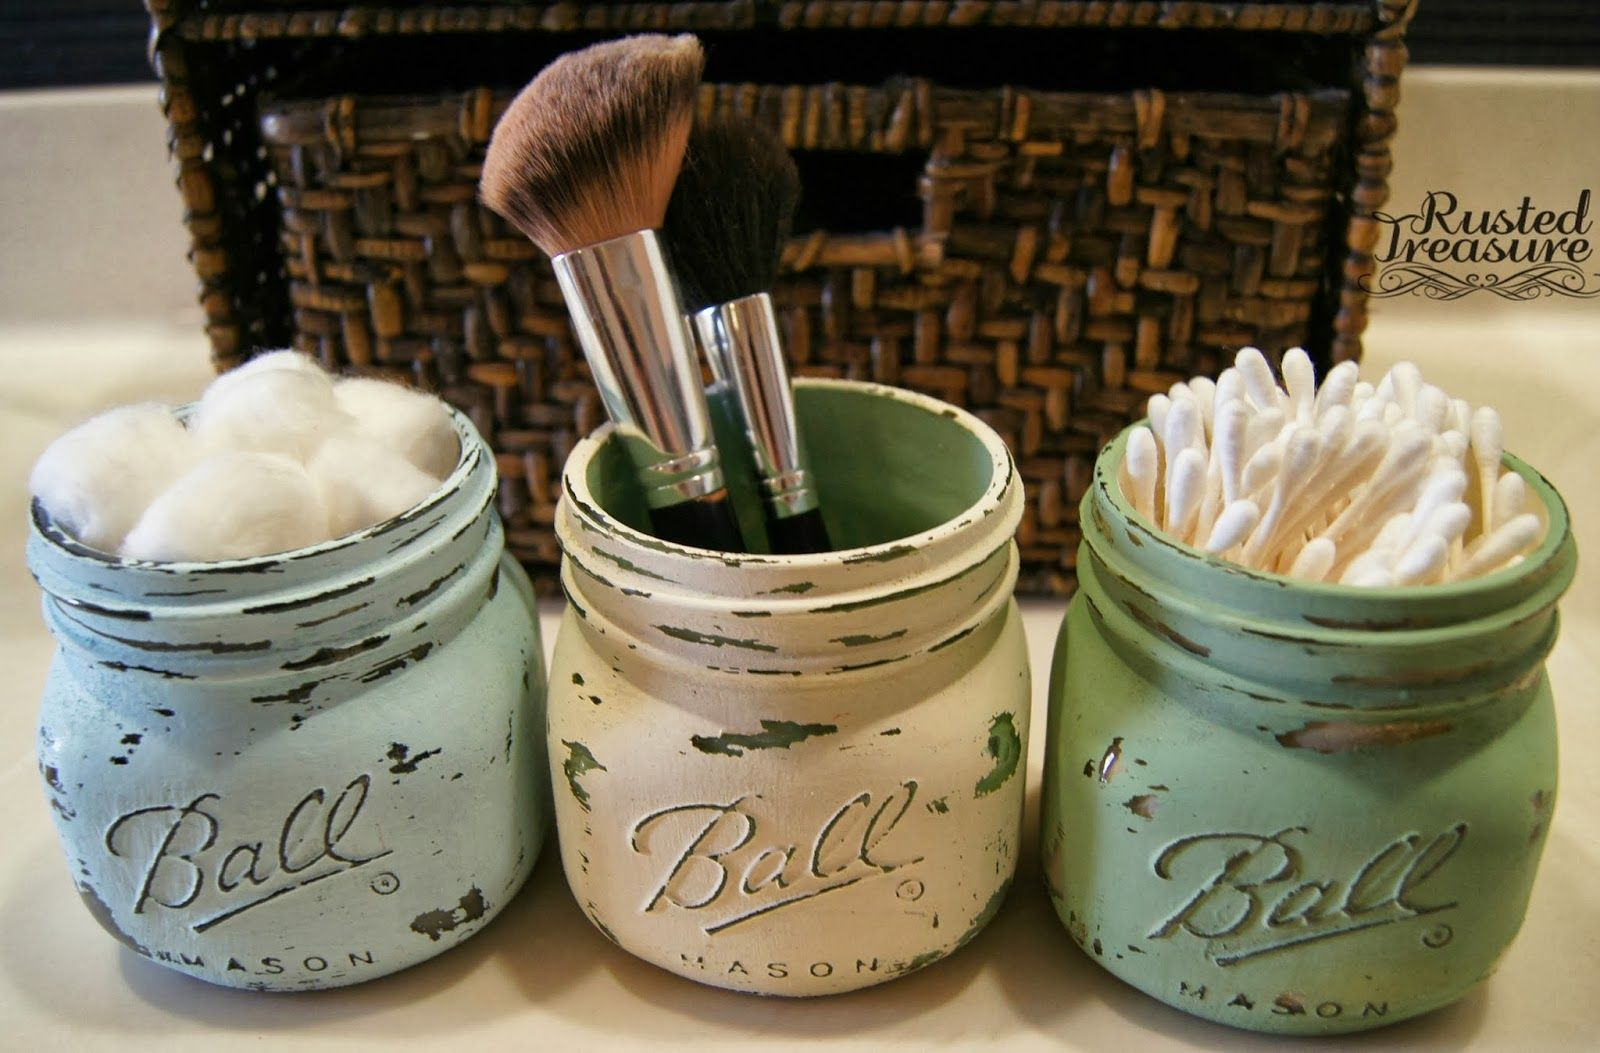 Diy Rustic Mason Jars With Great How To S Love The Bathroom Storage Idea Rustic Diy Painted Mason Jars Mason Jar Crafts